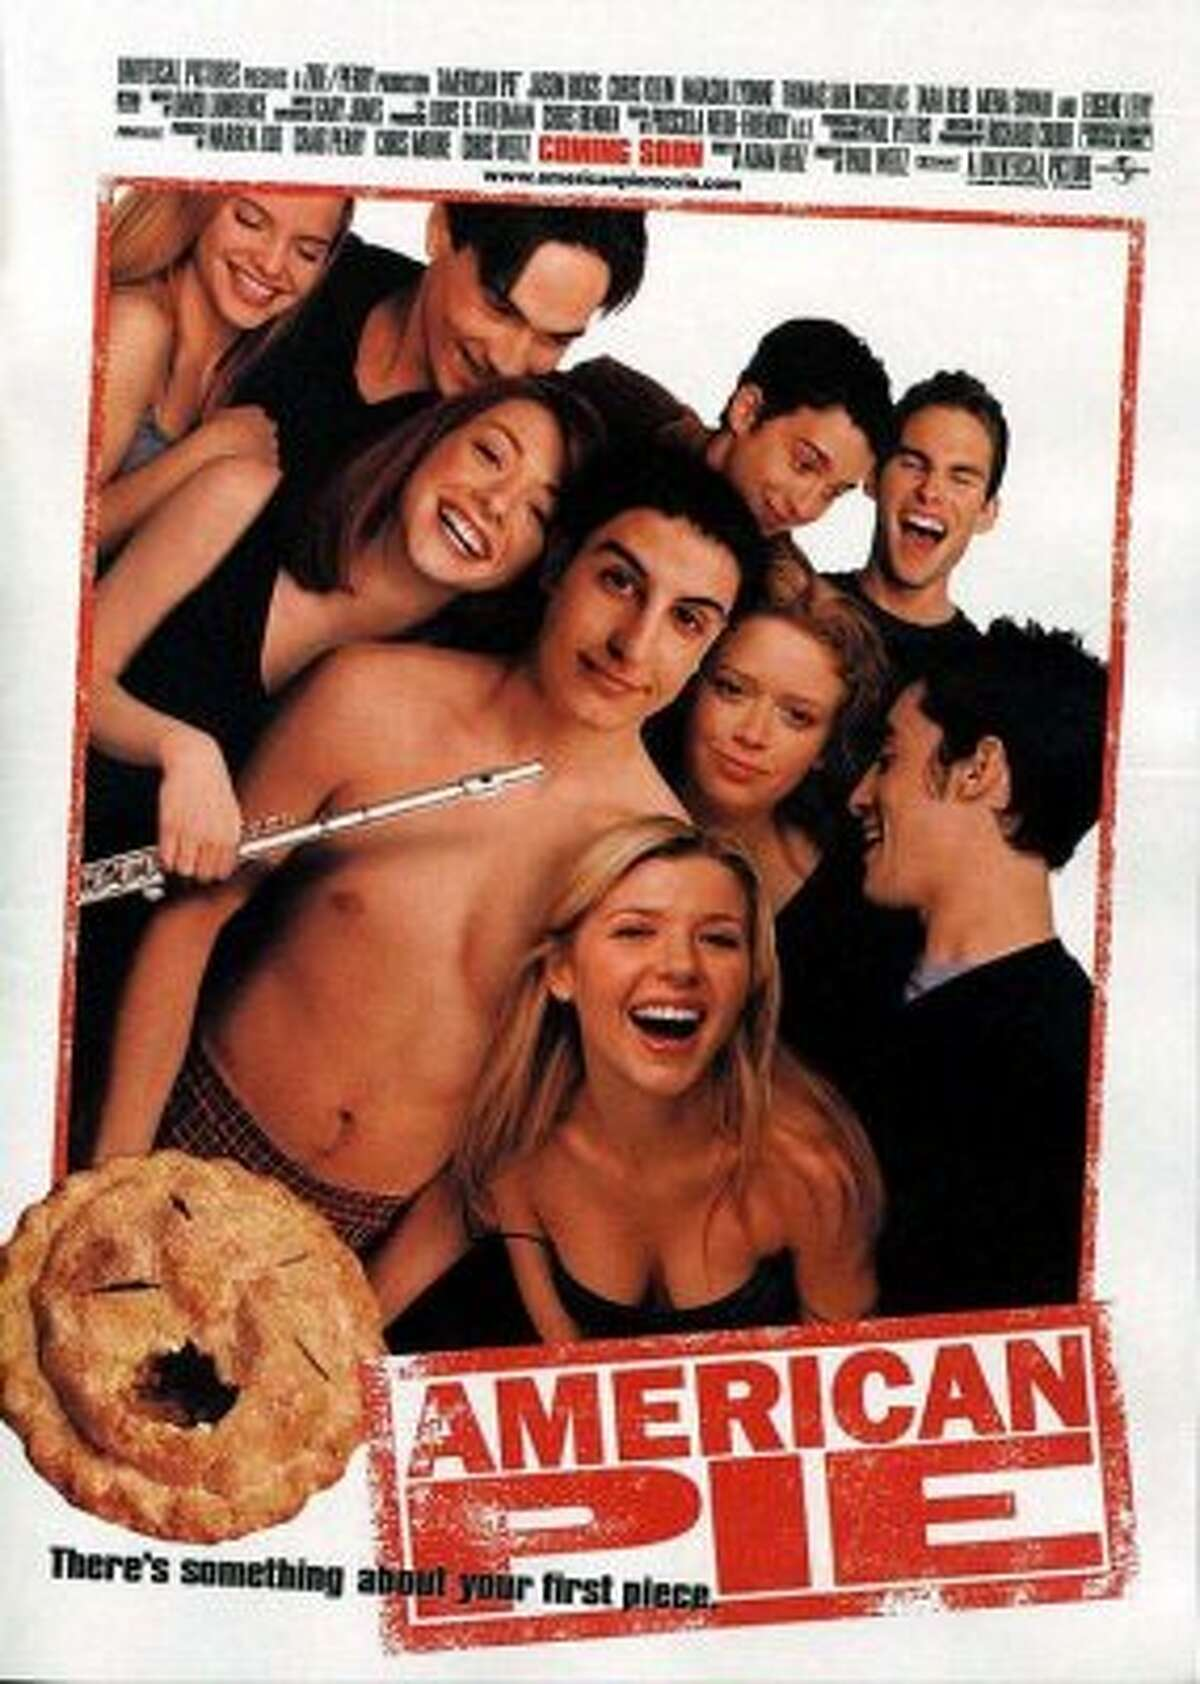 American Pie (1999) | American Pie 2 (2001) | American Pie Presents: Band Camp (2005) Available on Netflix Feb. 1Four teenage boys enter a pact to lose their virginity by prom night.